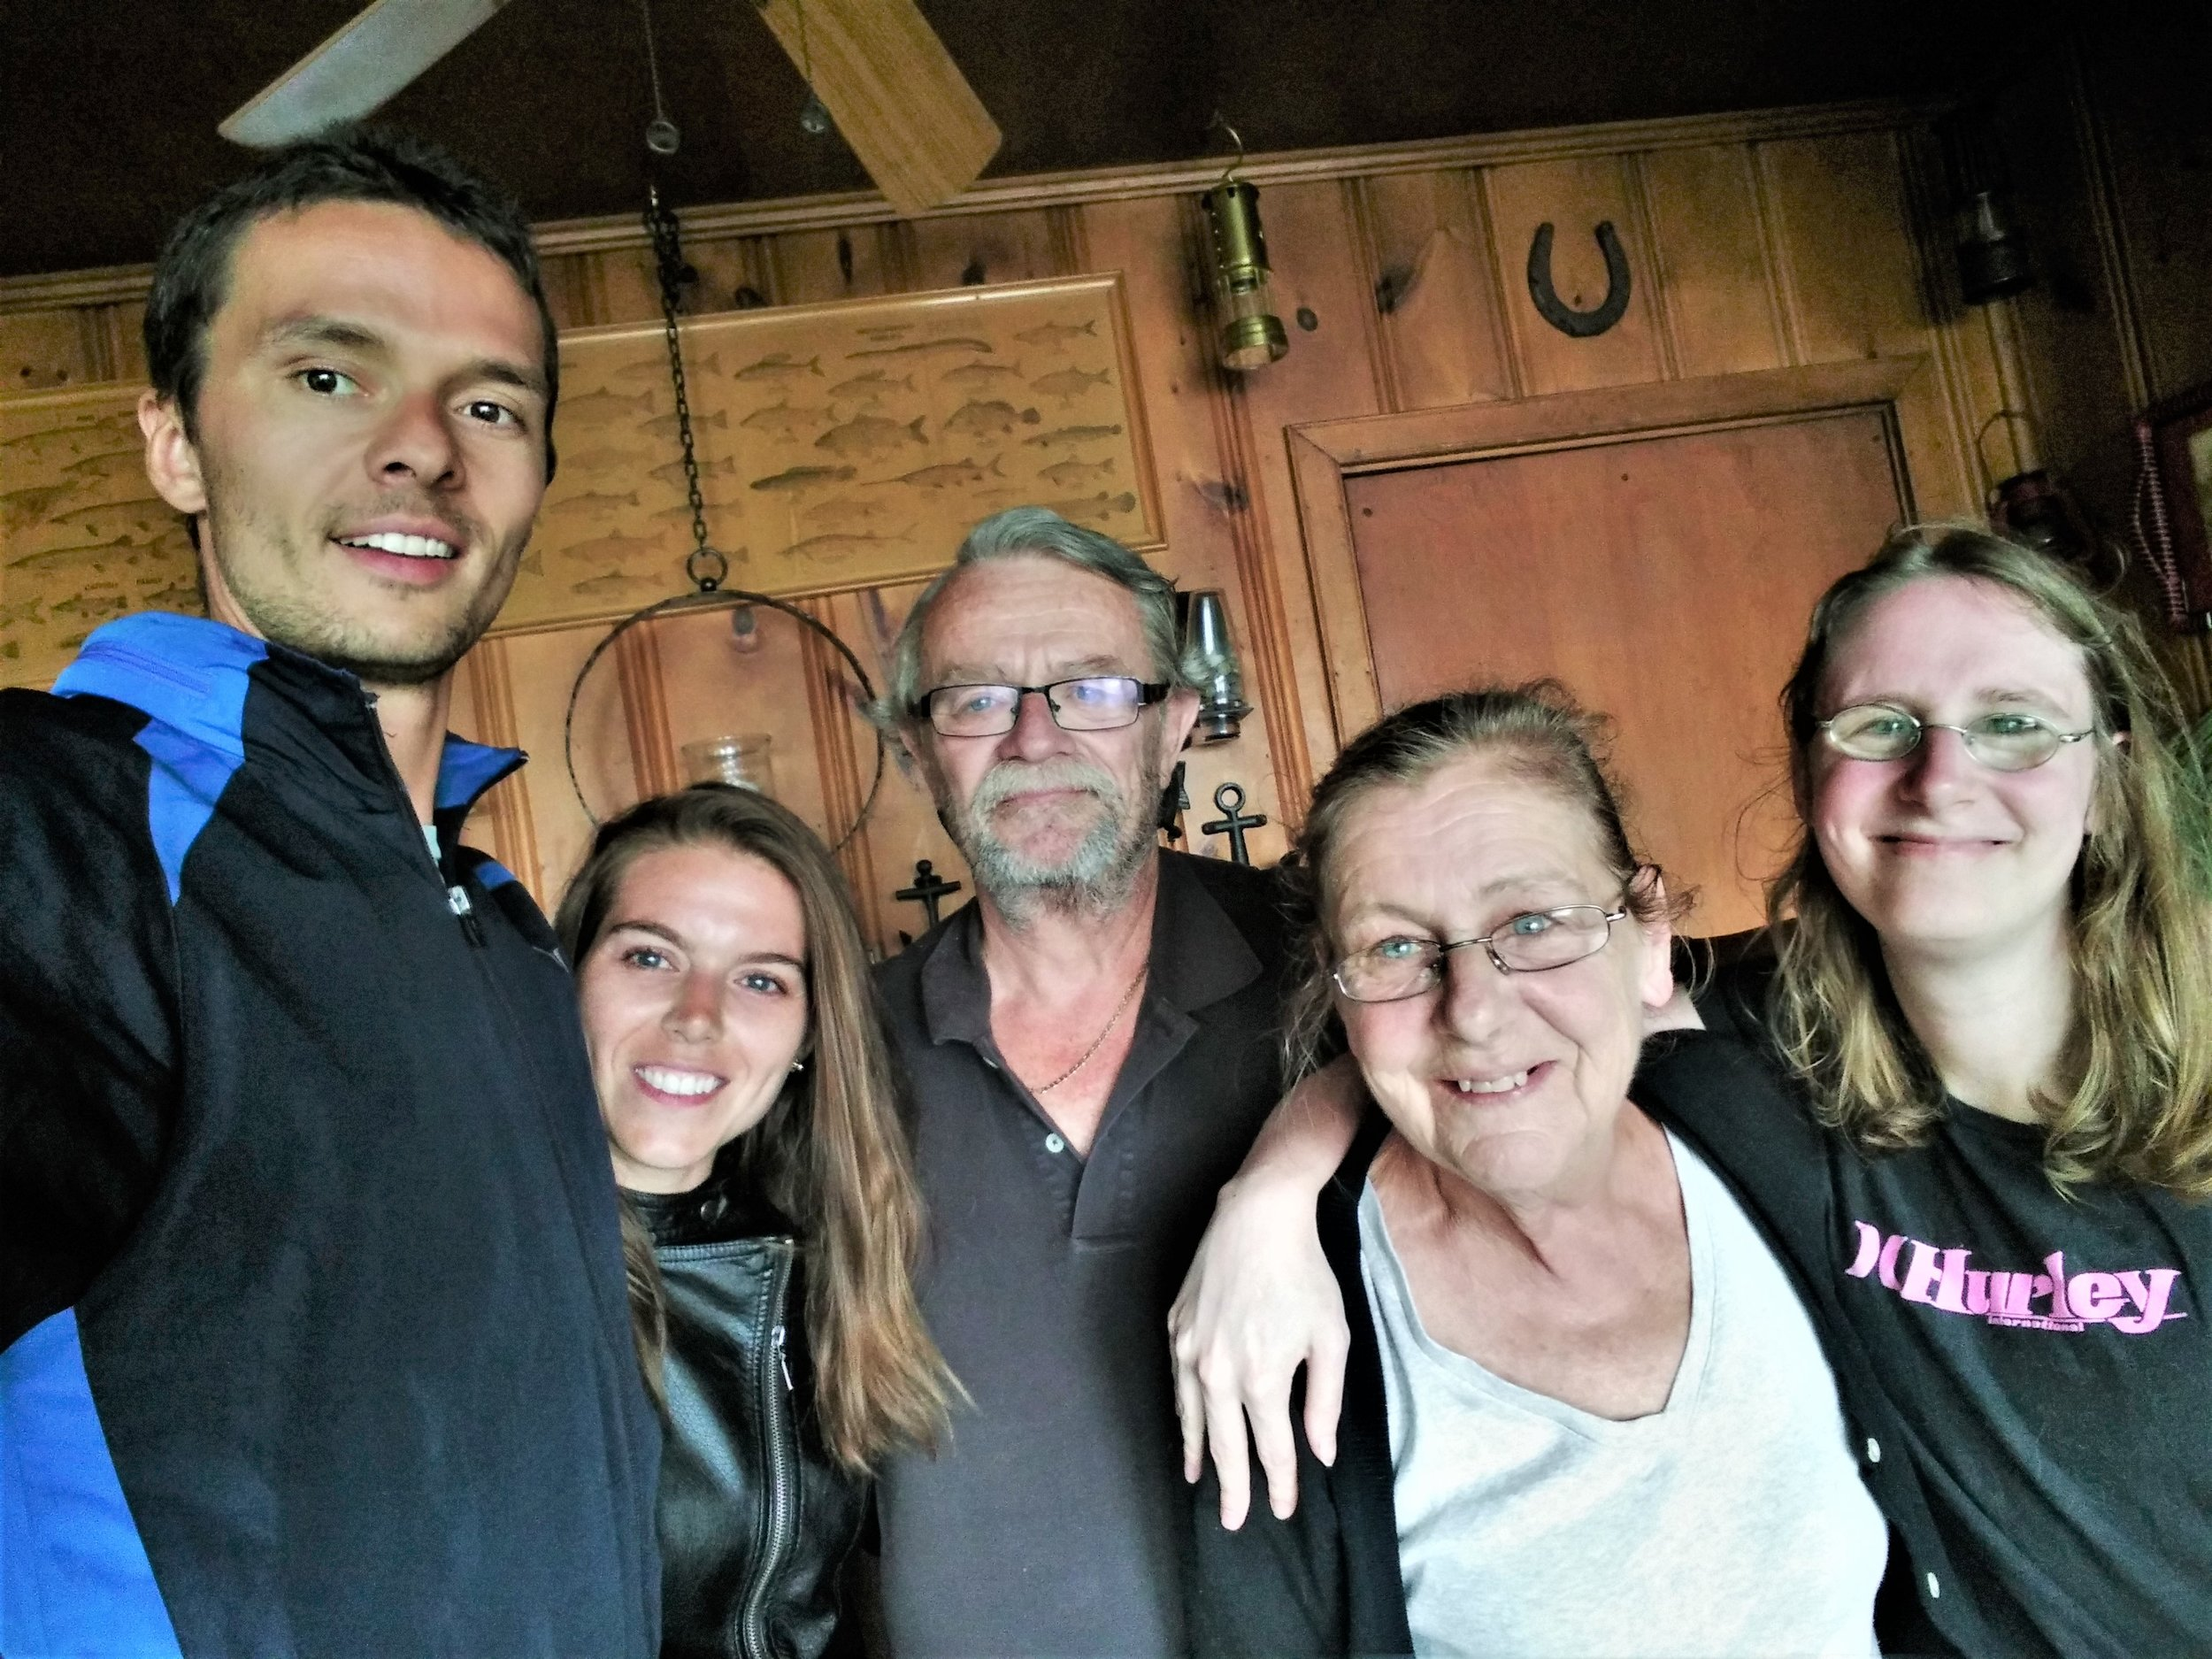 Although we had never before met Cathy, Bob, and their lovey daughter Jen, Braden's extended family welcomed us in as just that: family.